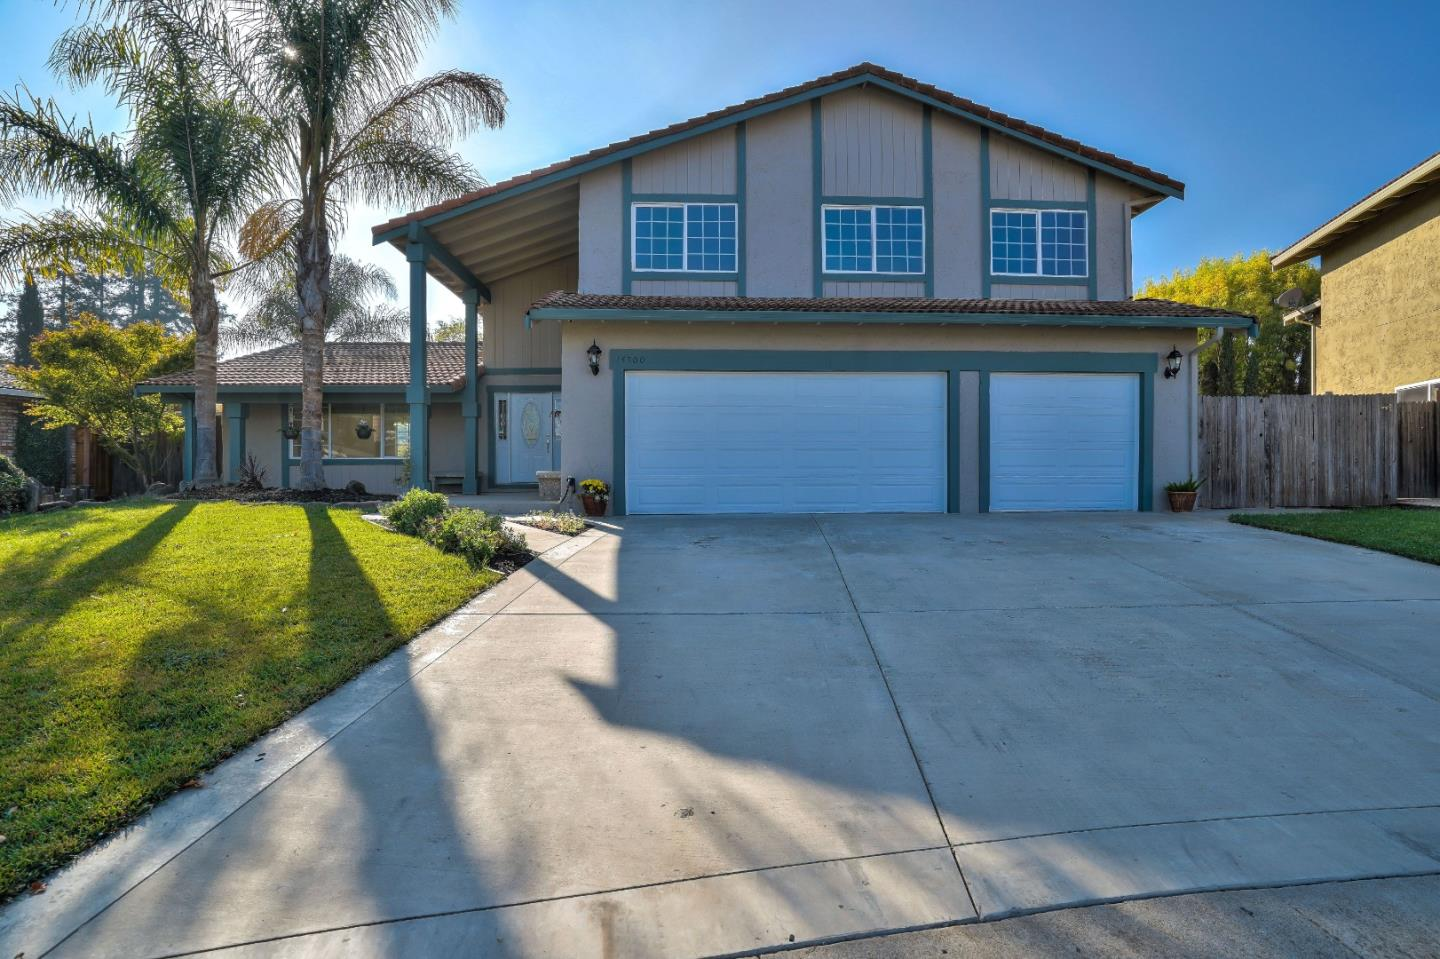 14500 Sunnybrook Court, Morgan Hill, CA 95037